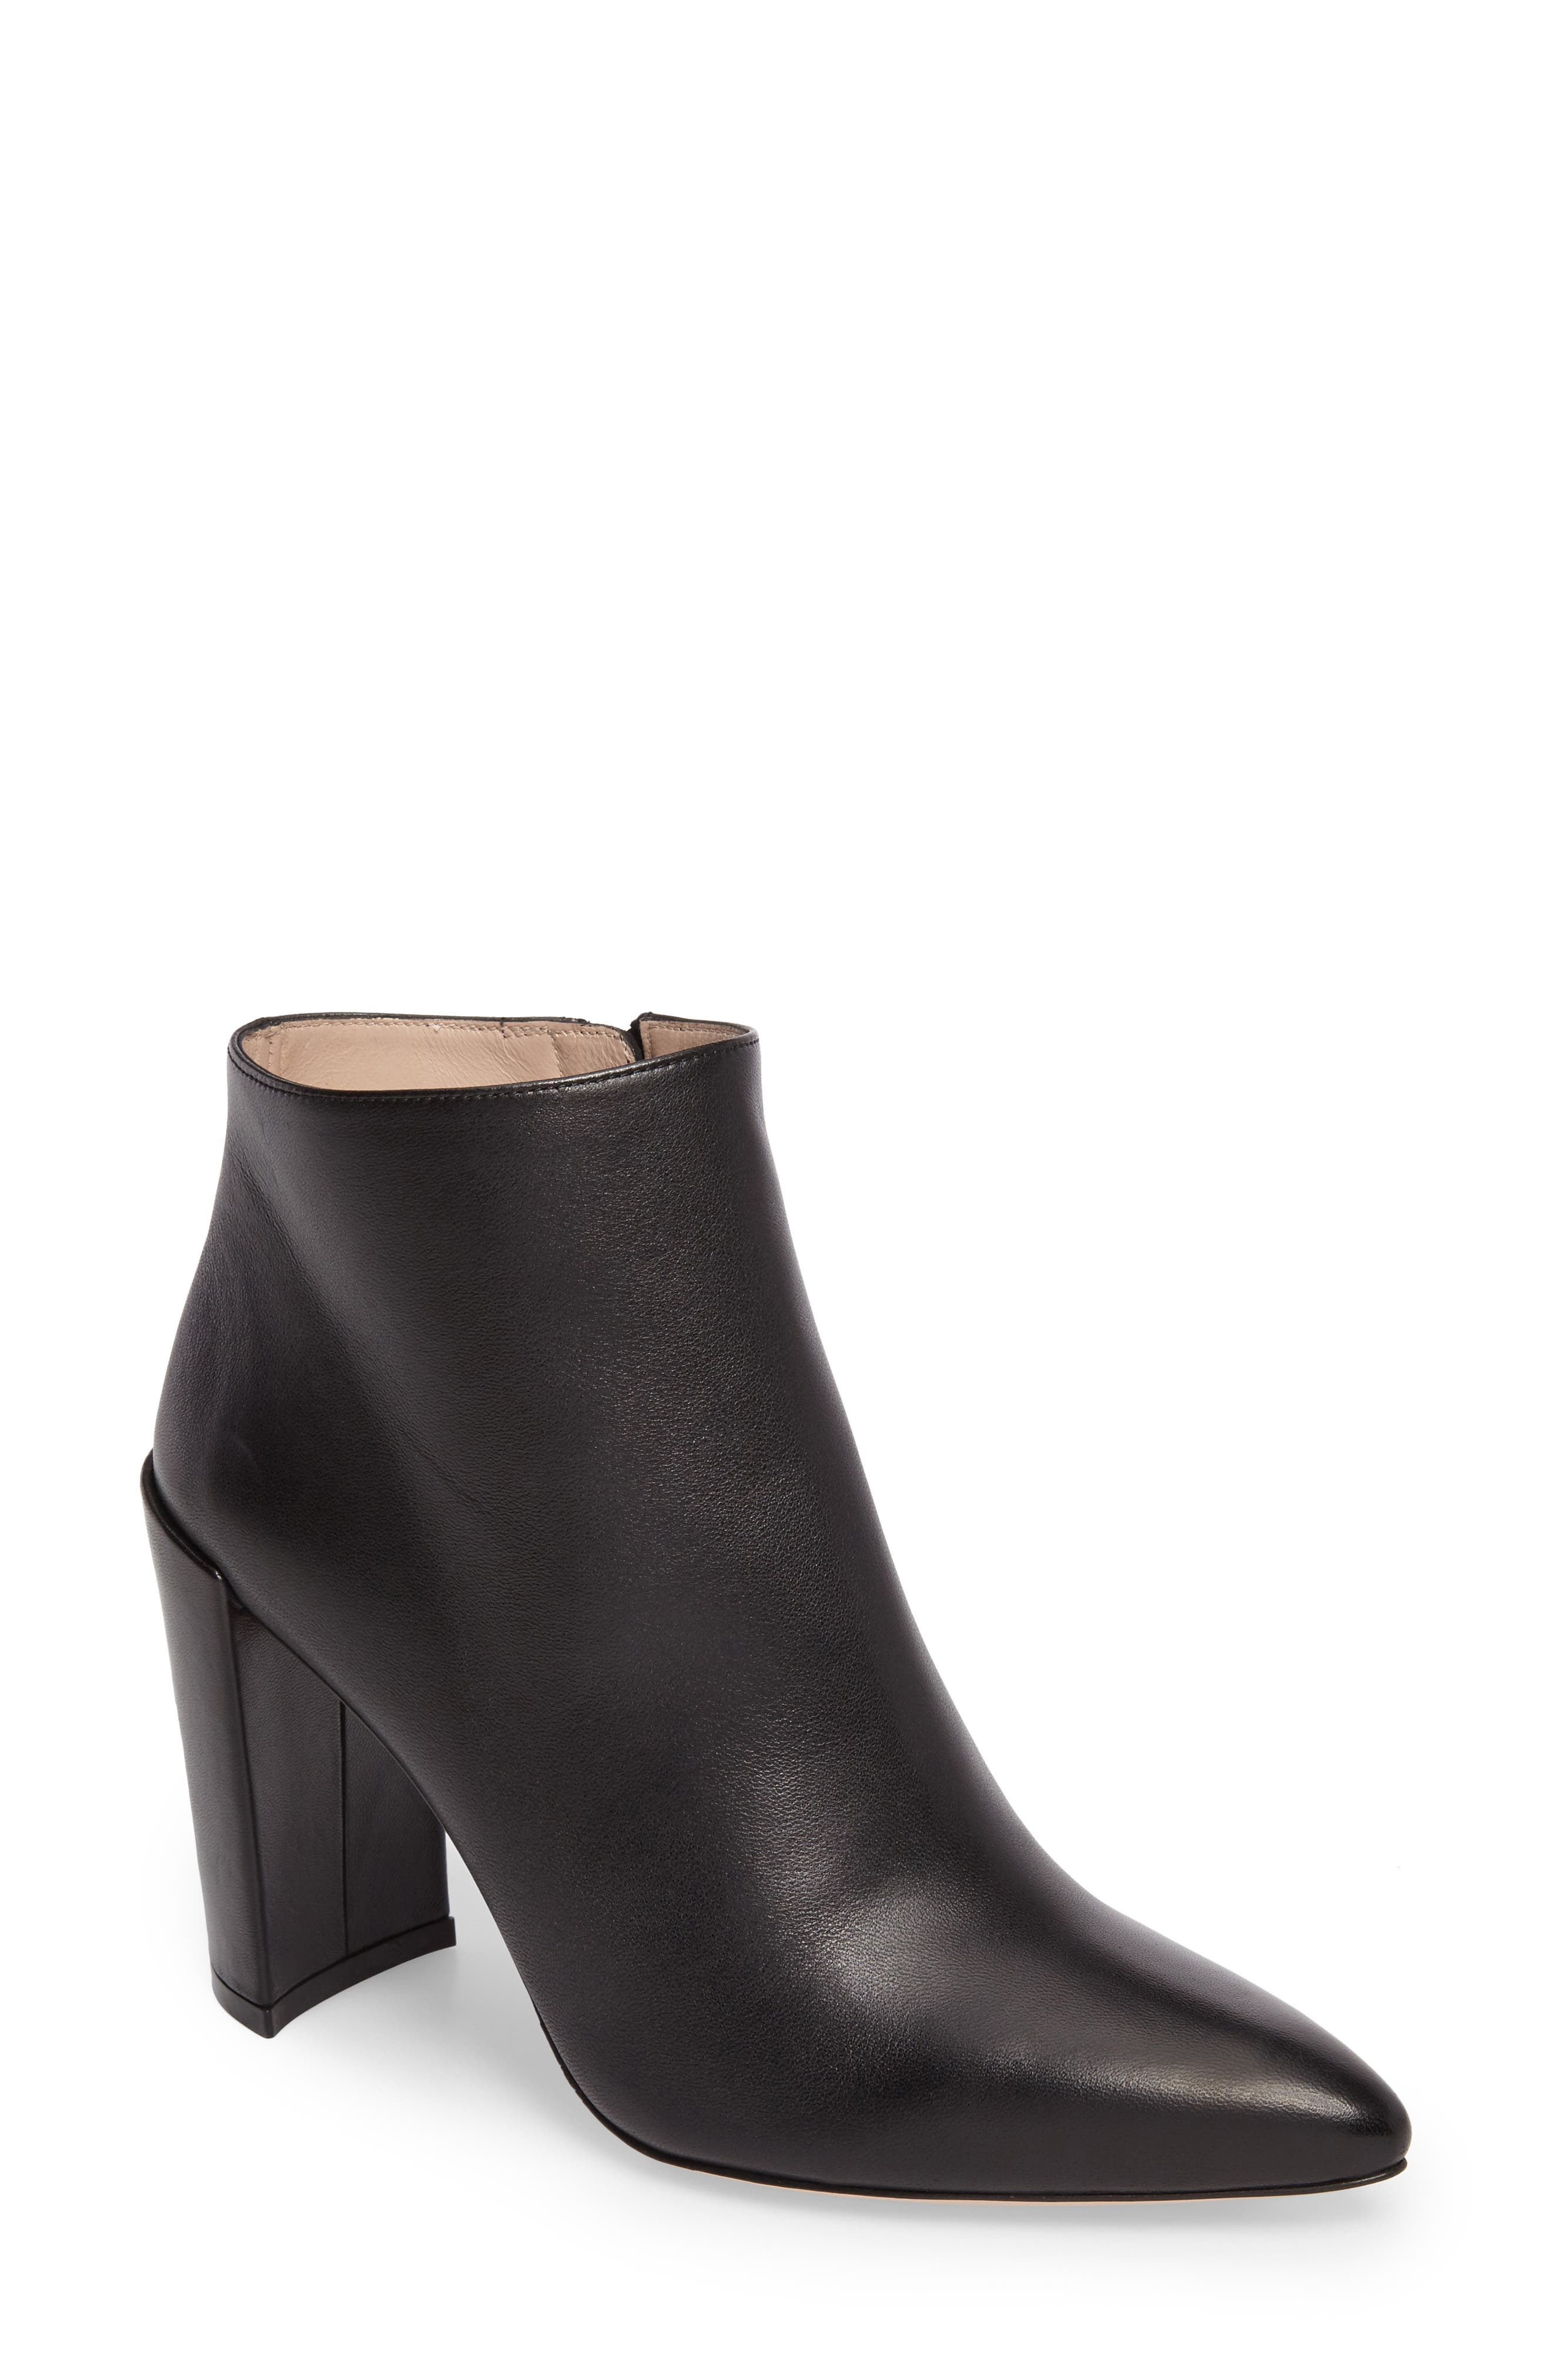 Pure Pointy Toe Bootie,                             Main thumbnail 1, color,                             Black Nappa